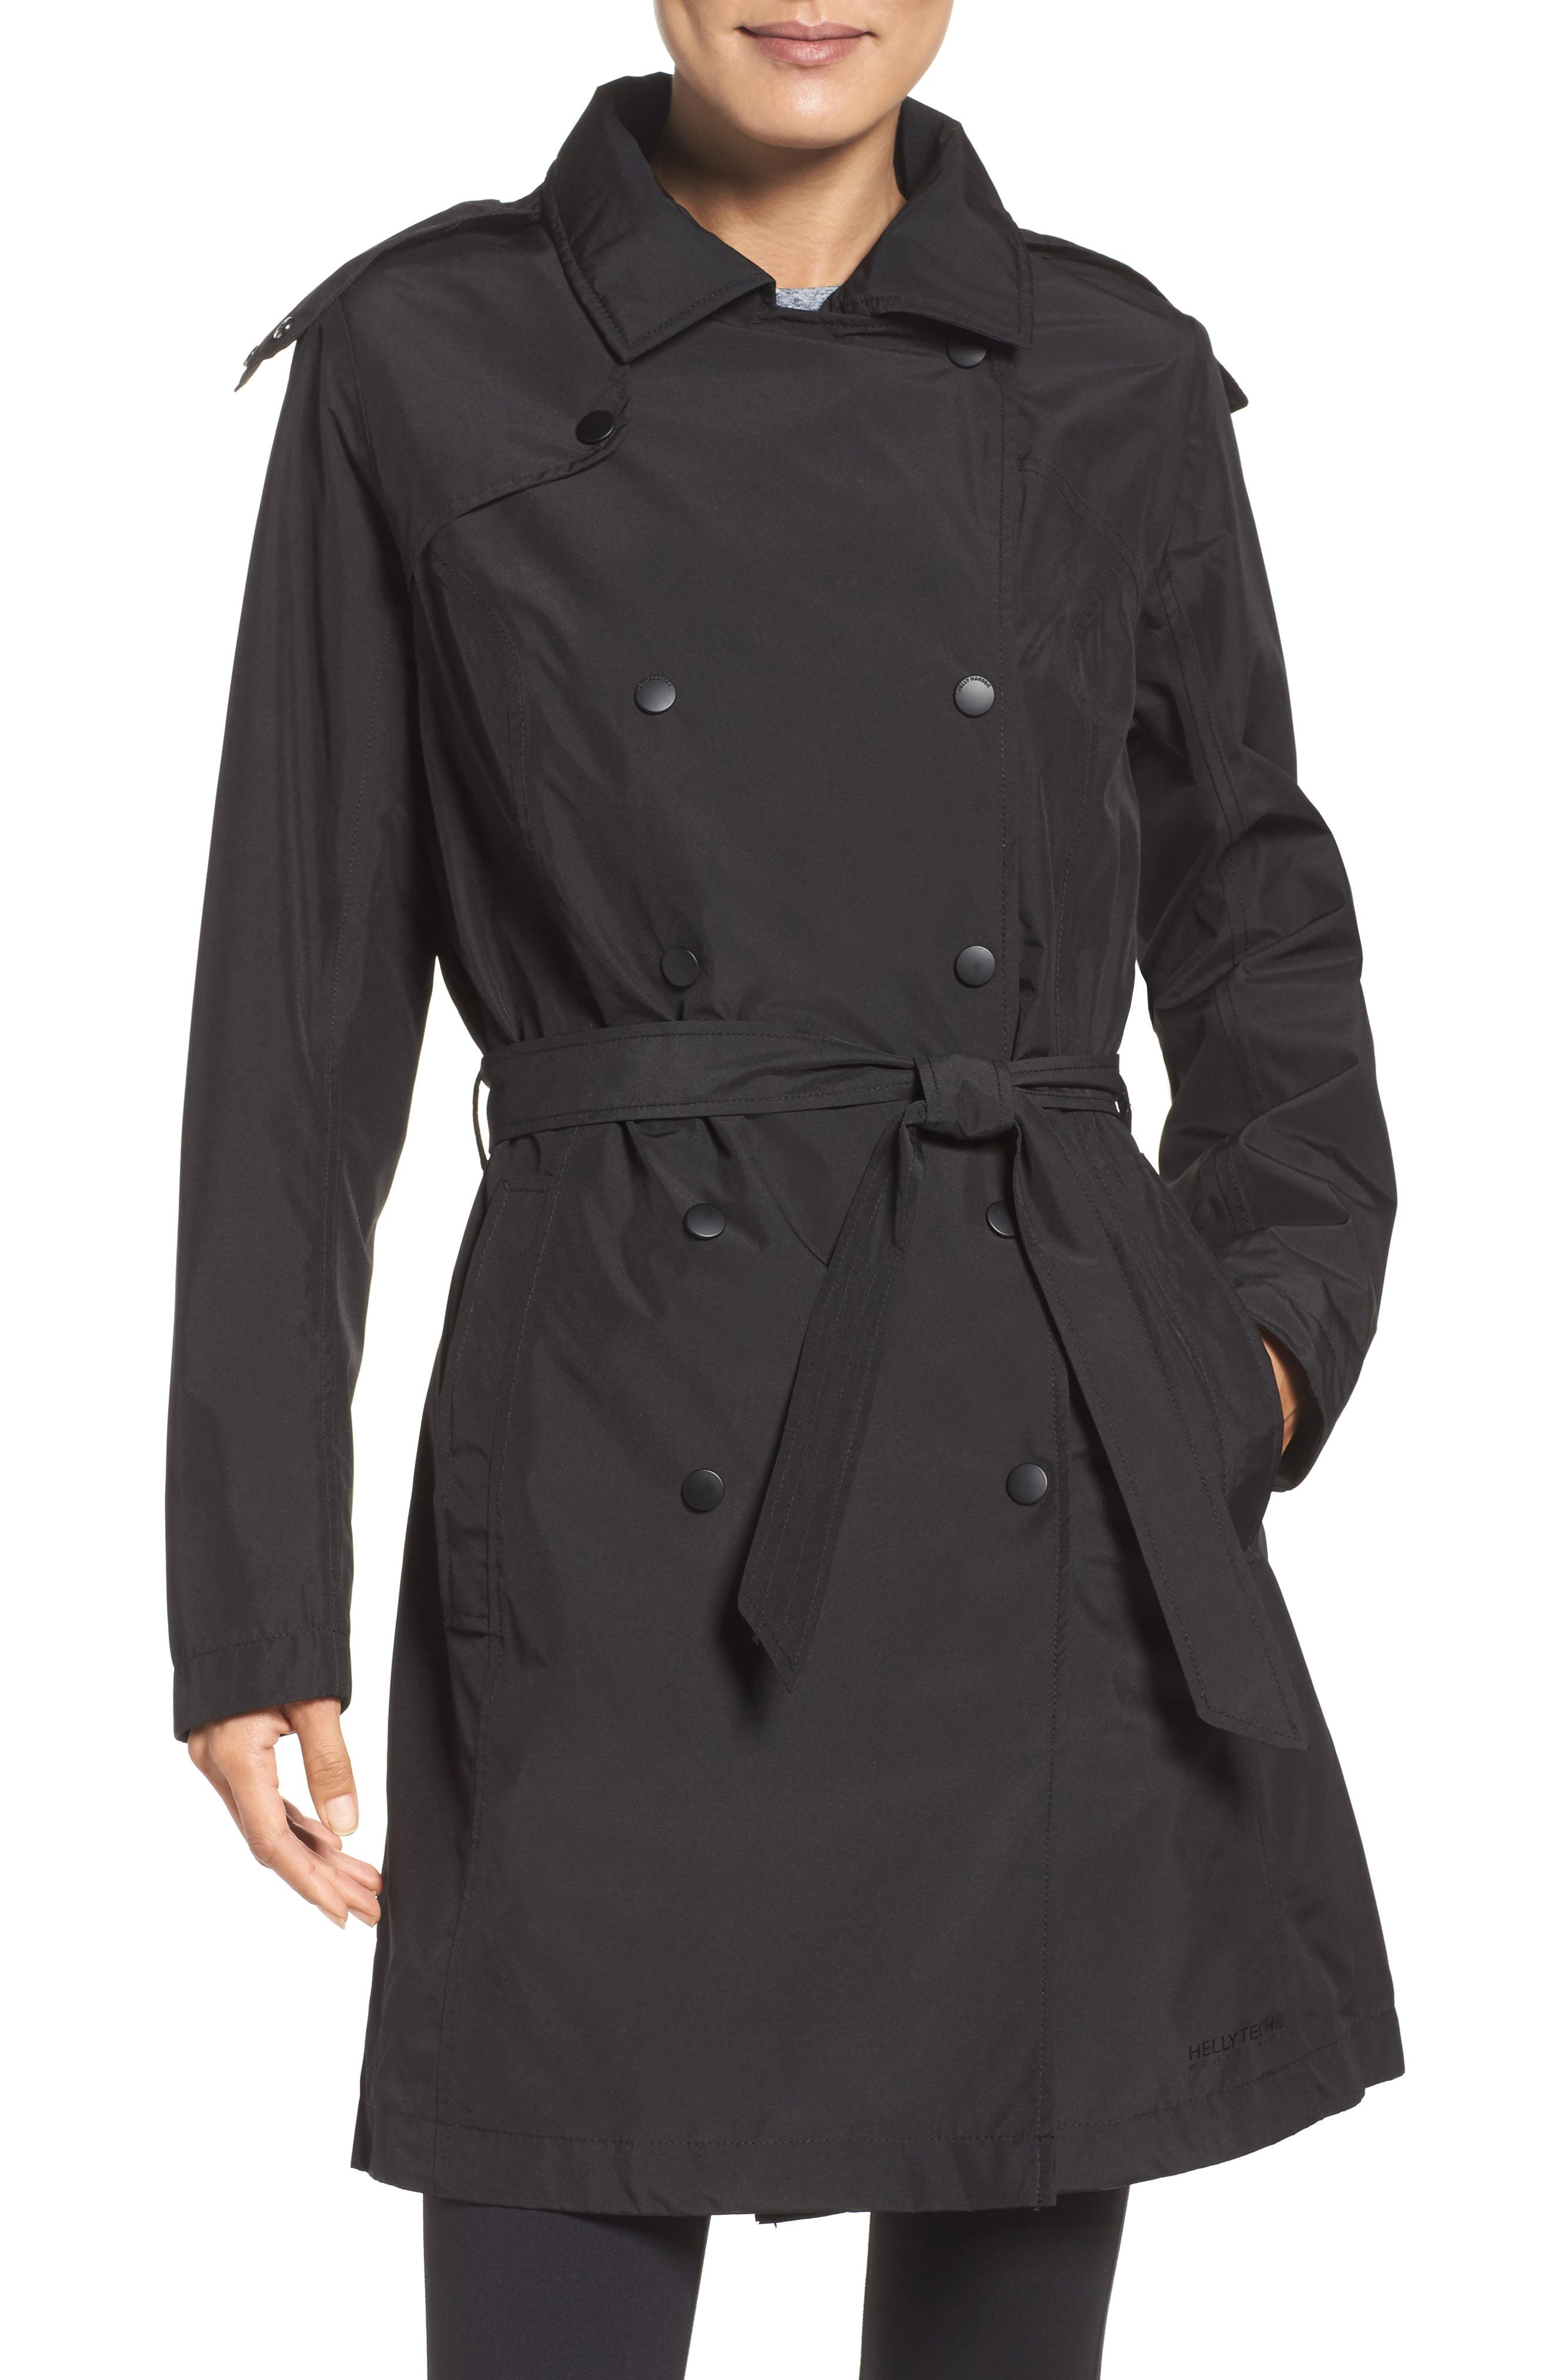 Helly Hansen Wellington Waterproof Trench Coat